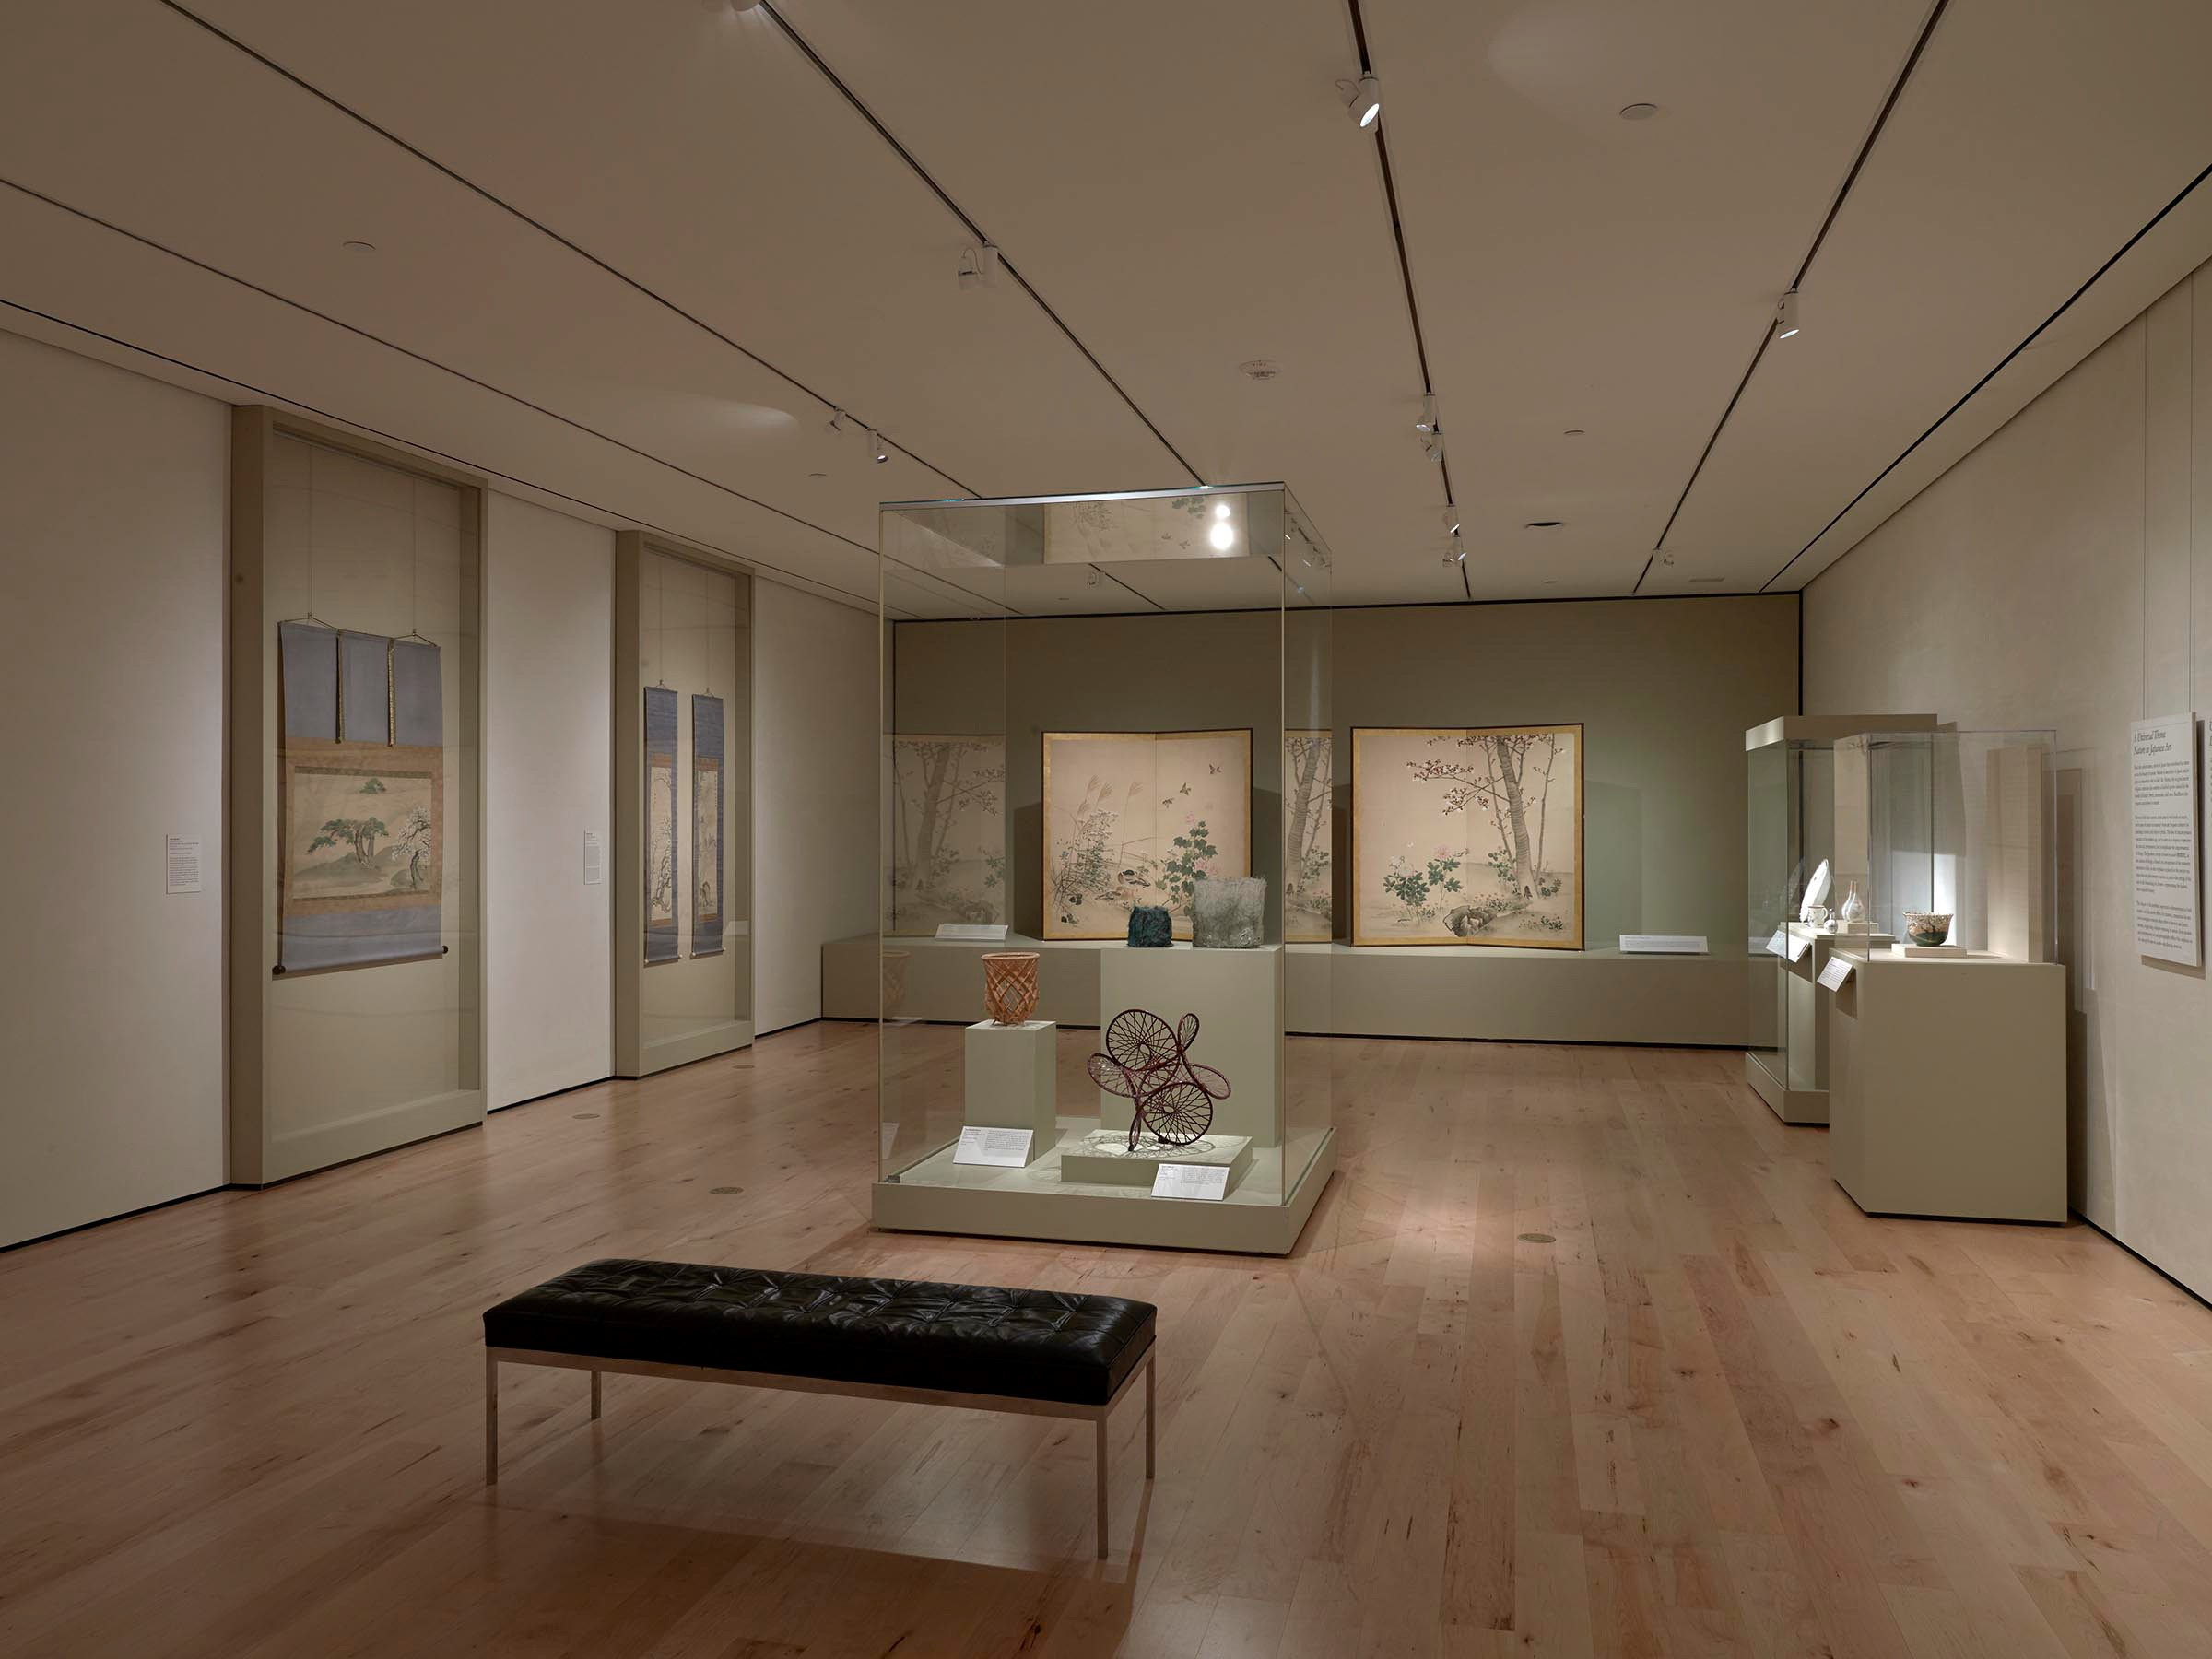 Arts of Japan gallery - installation view